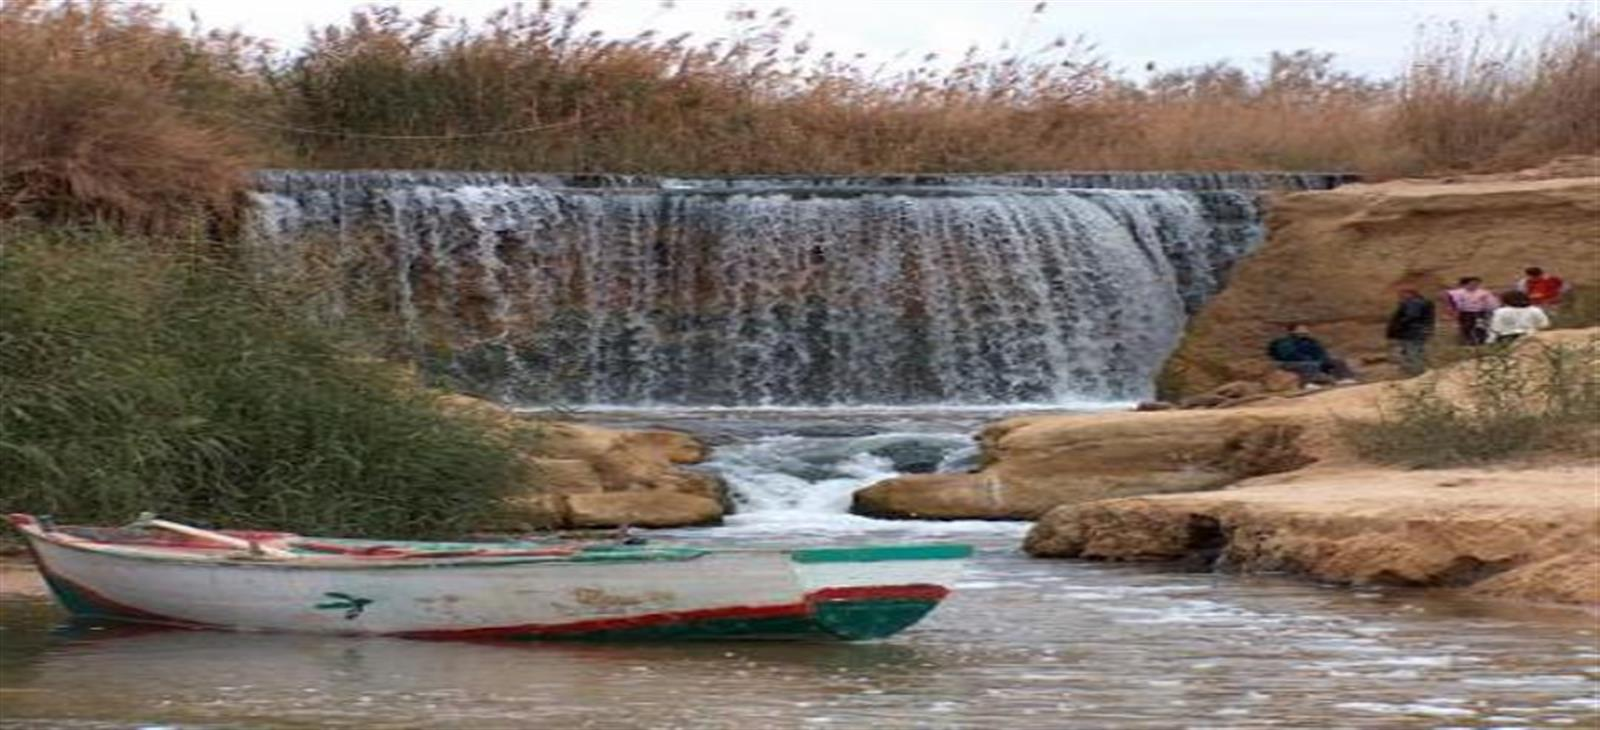 Overnight trip to Wadi El Rayan and Wadi El Hitan